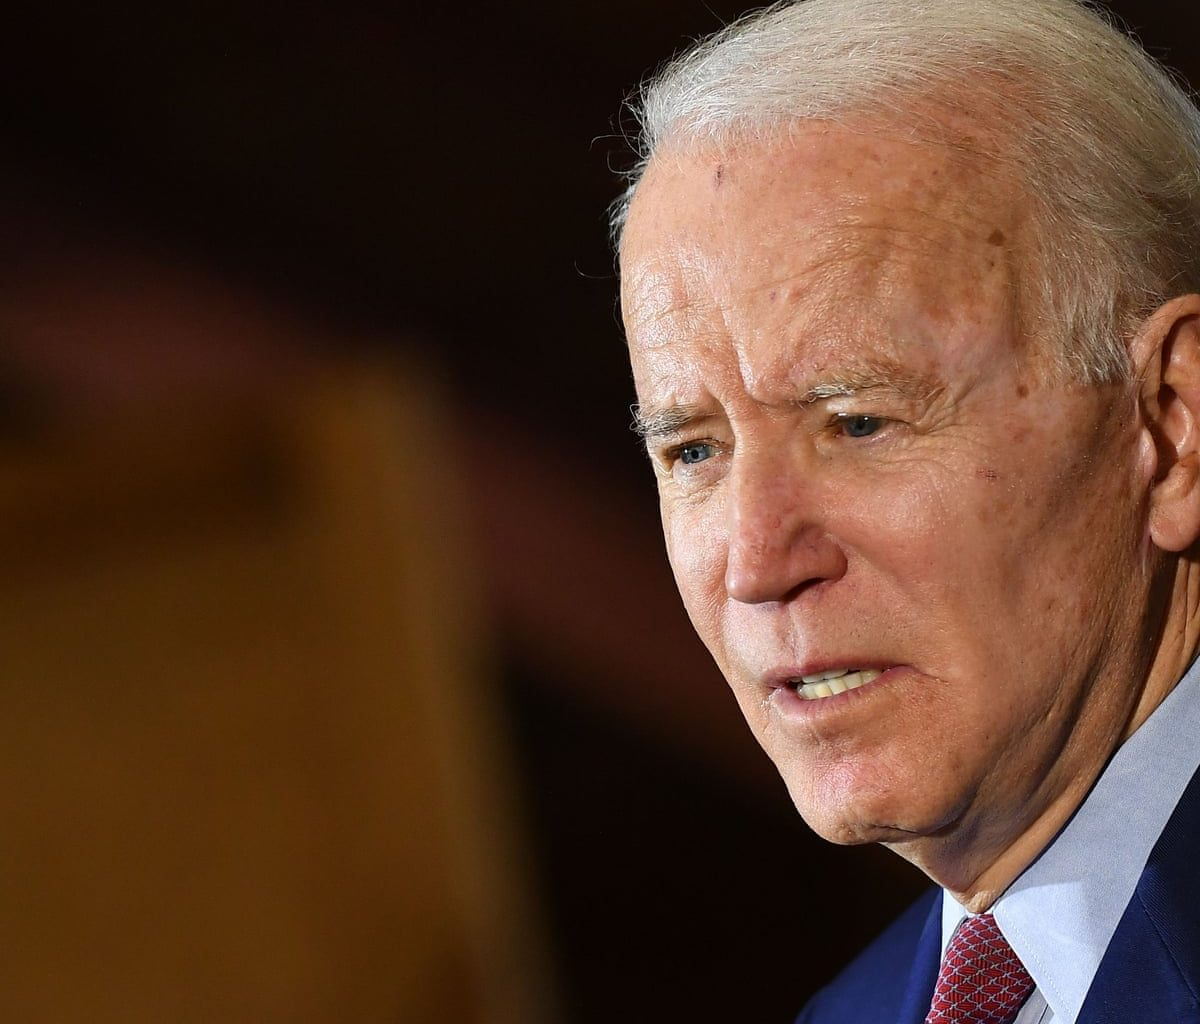 Leaked Joe Biden Audio